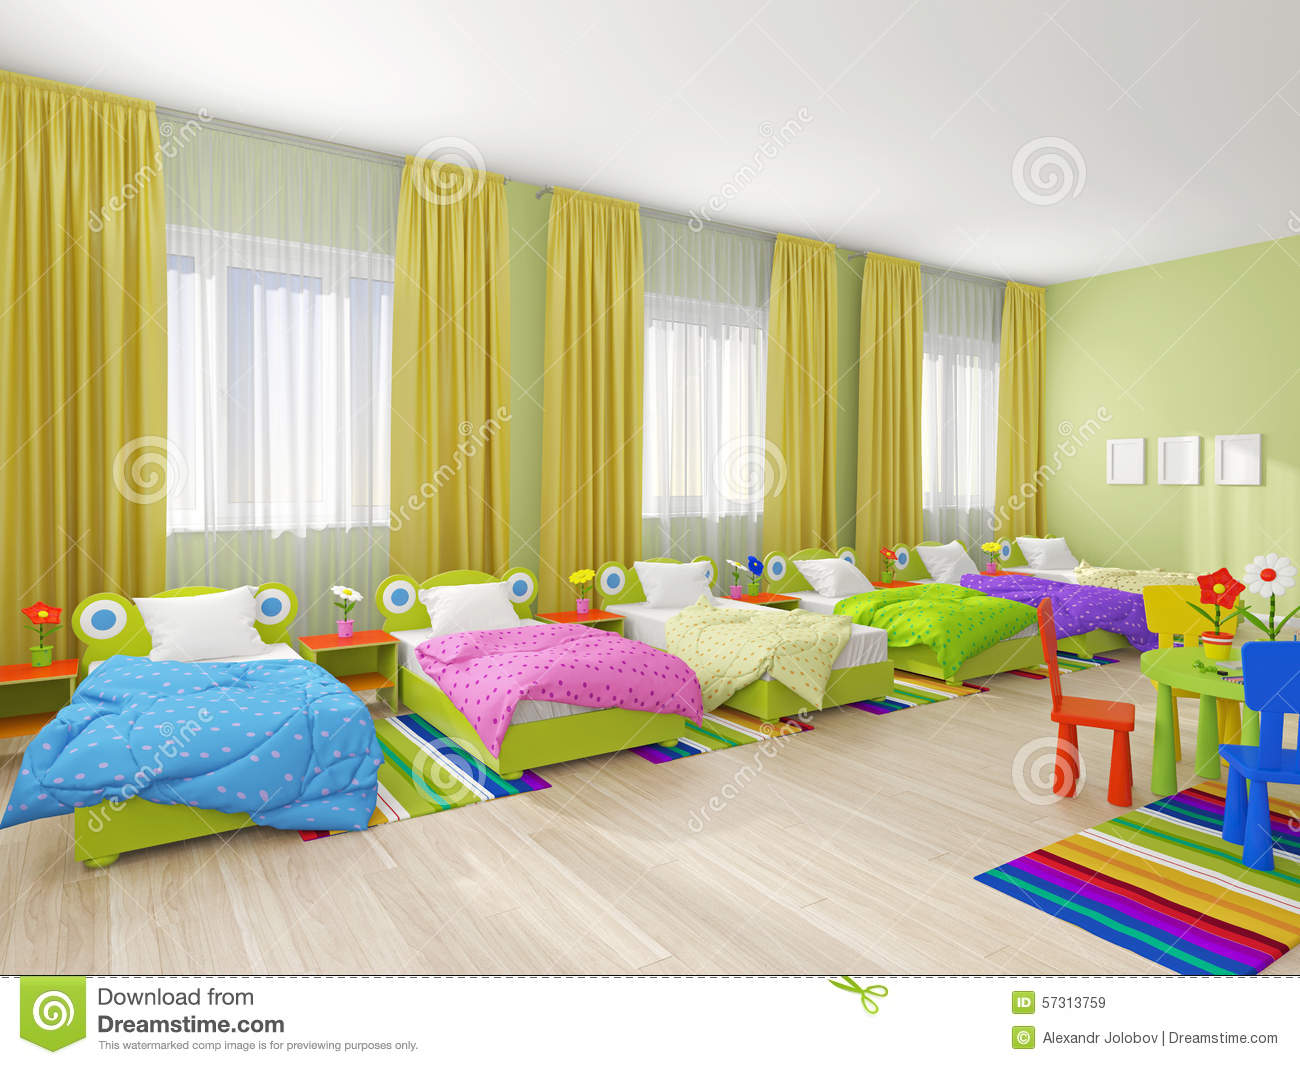 Bedroom Interior In Kindergarten Stock Photo - Image: 57313759